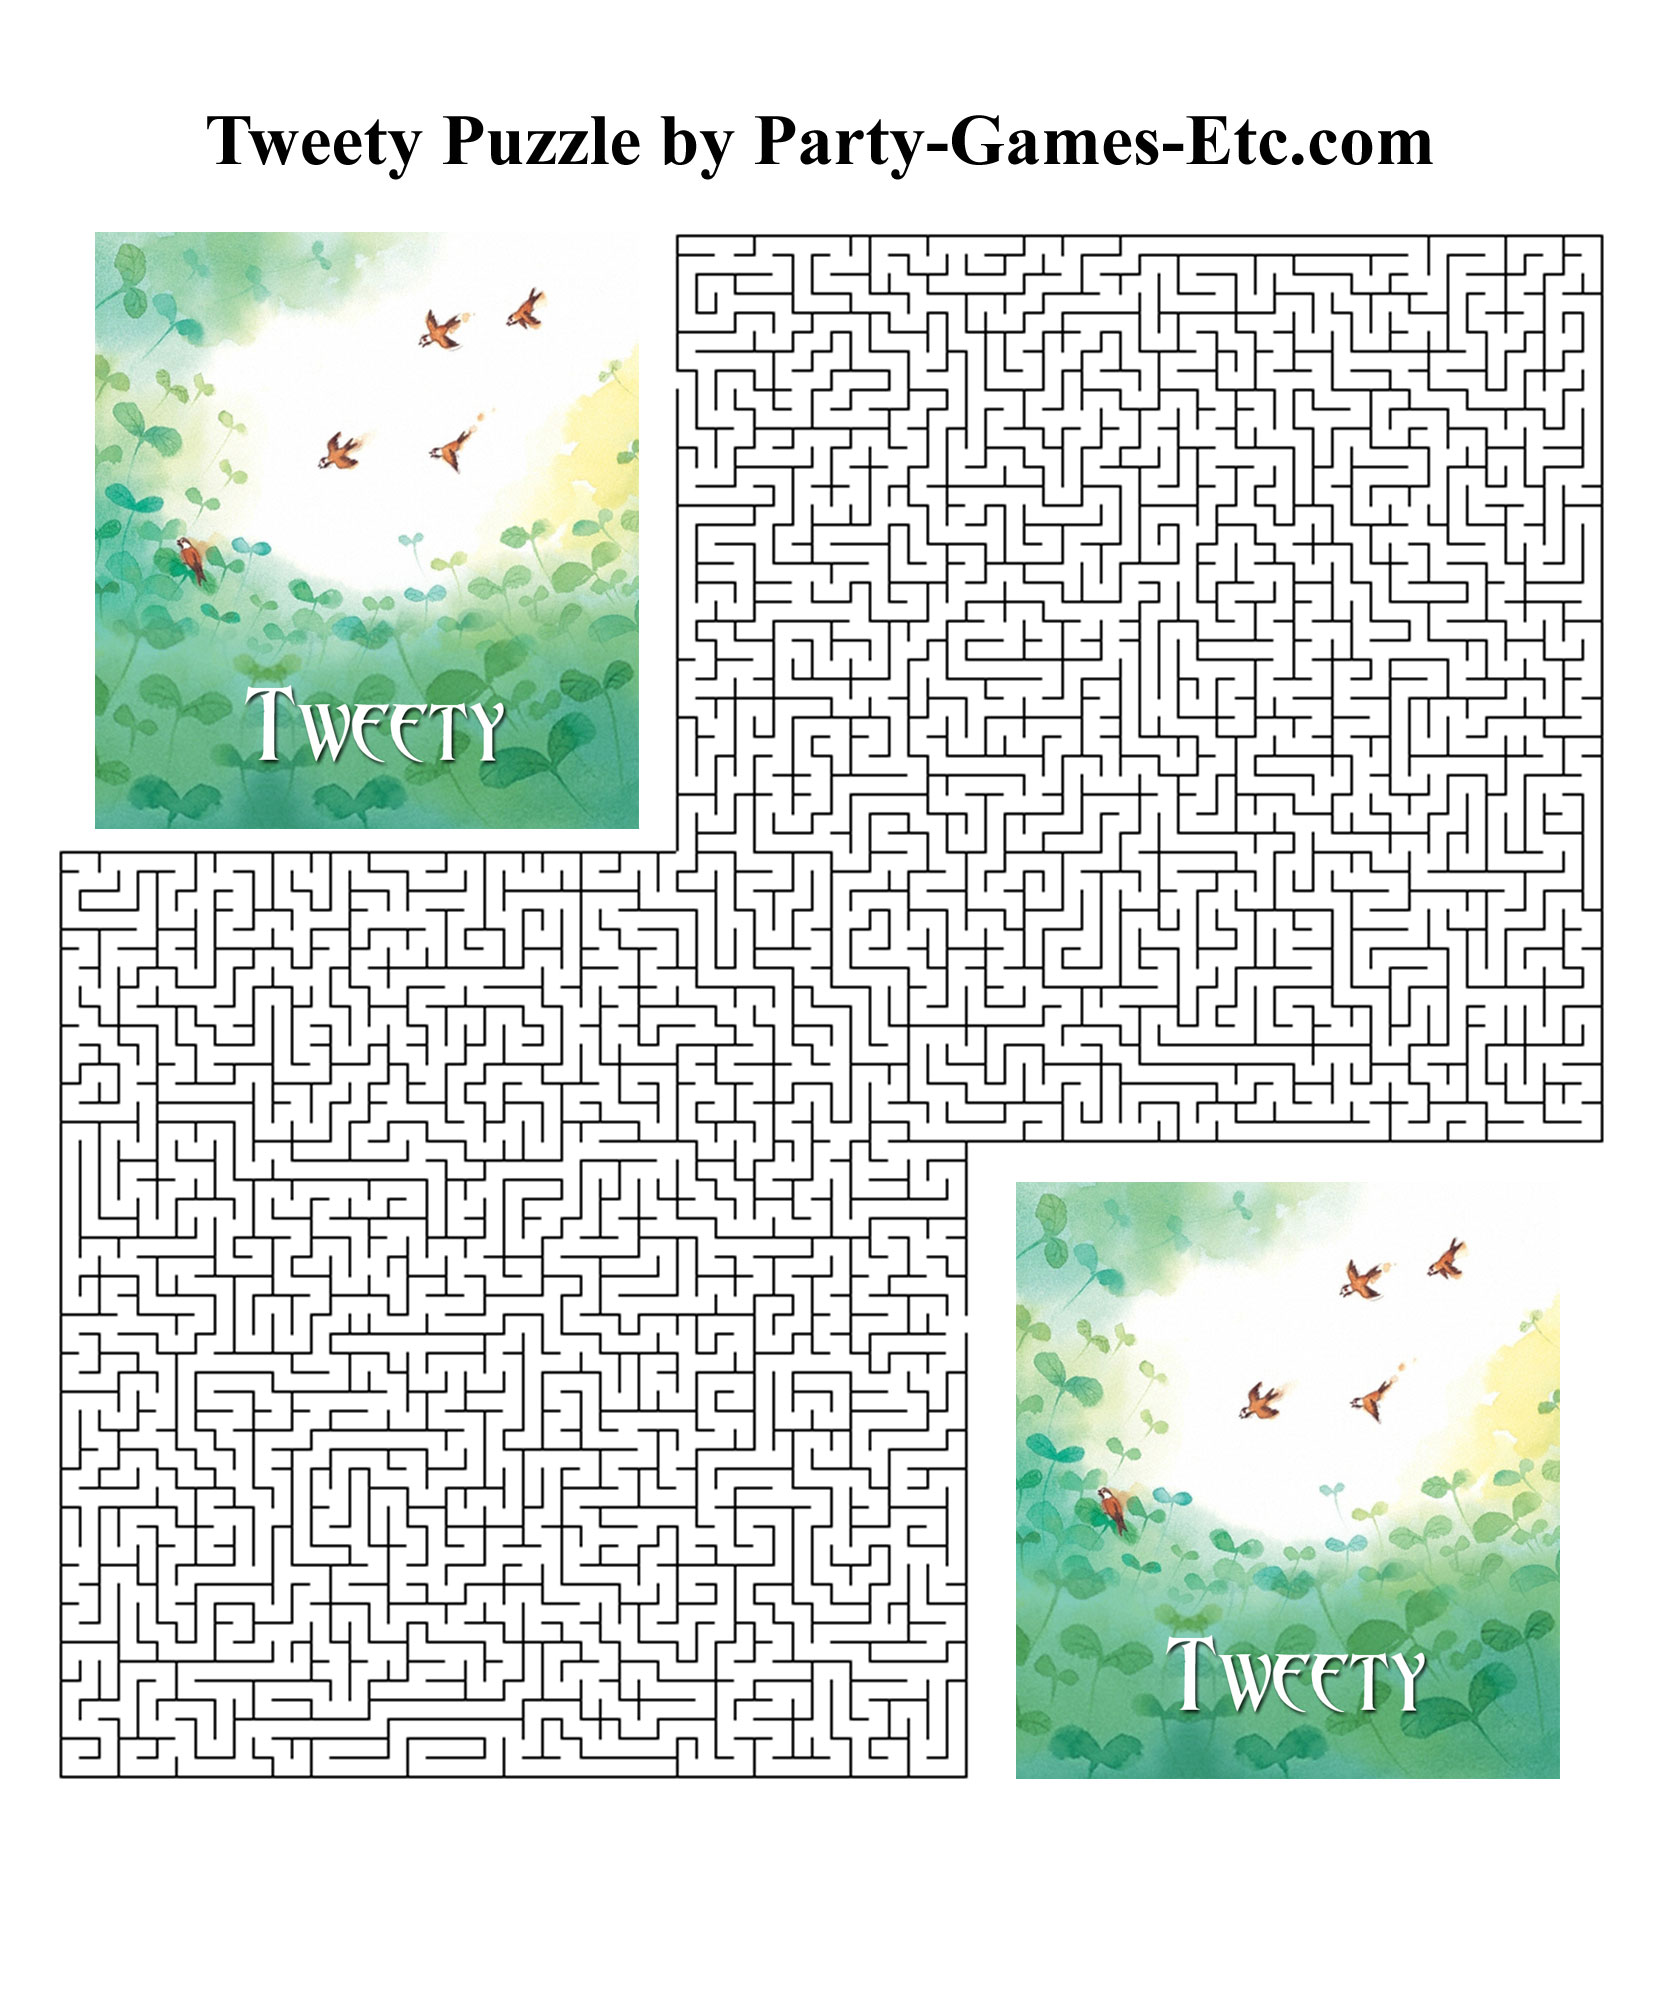 Free Printable Tweety Party Game and Pen and Paper Activity